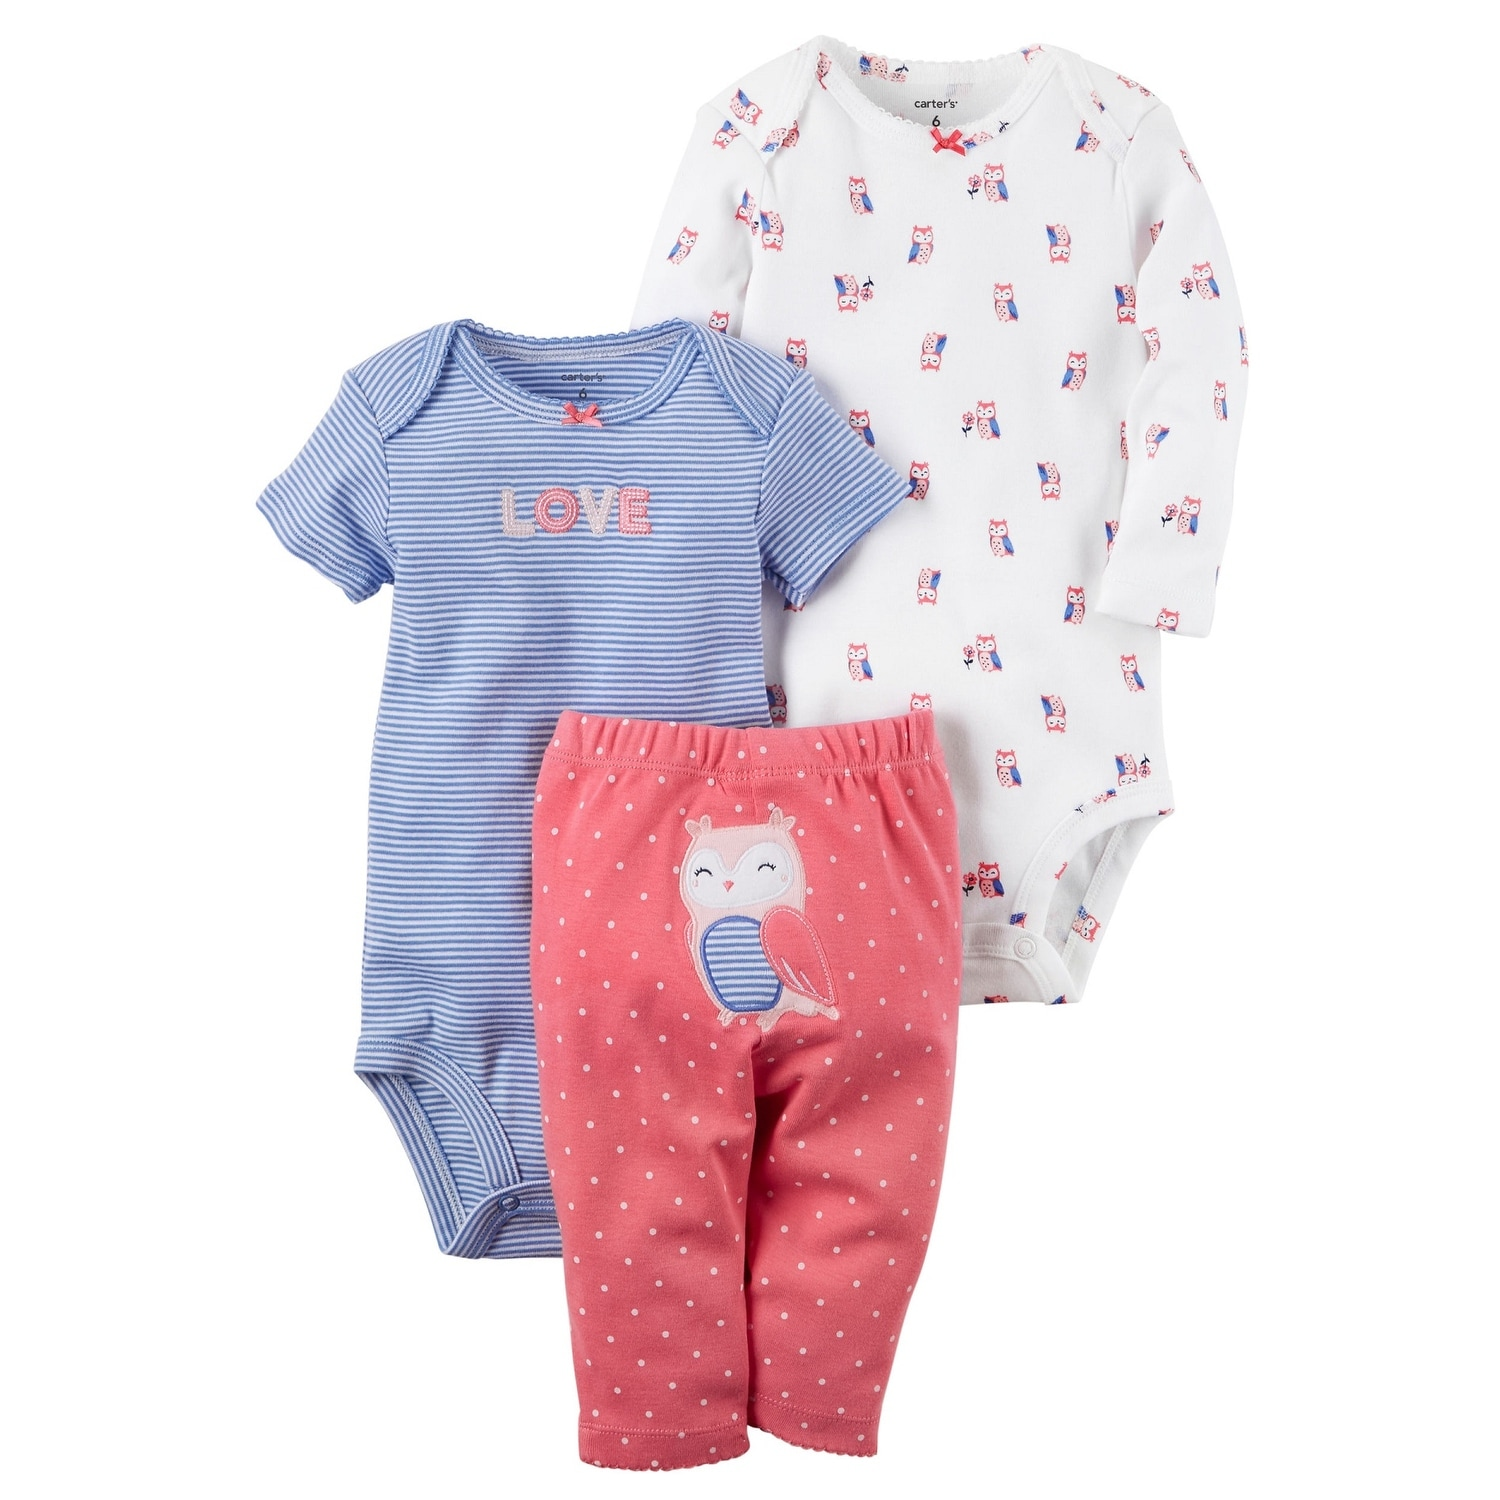 34c4db2ebe3 Shop Carter s Baby Girls  3-Piece Little Character Set